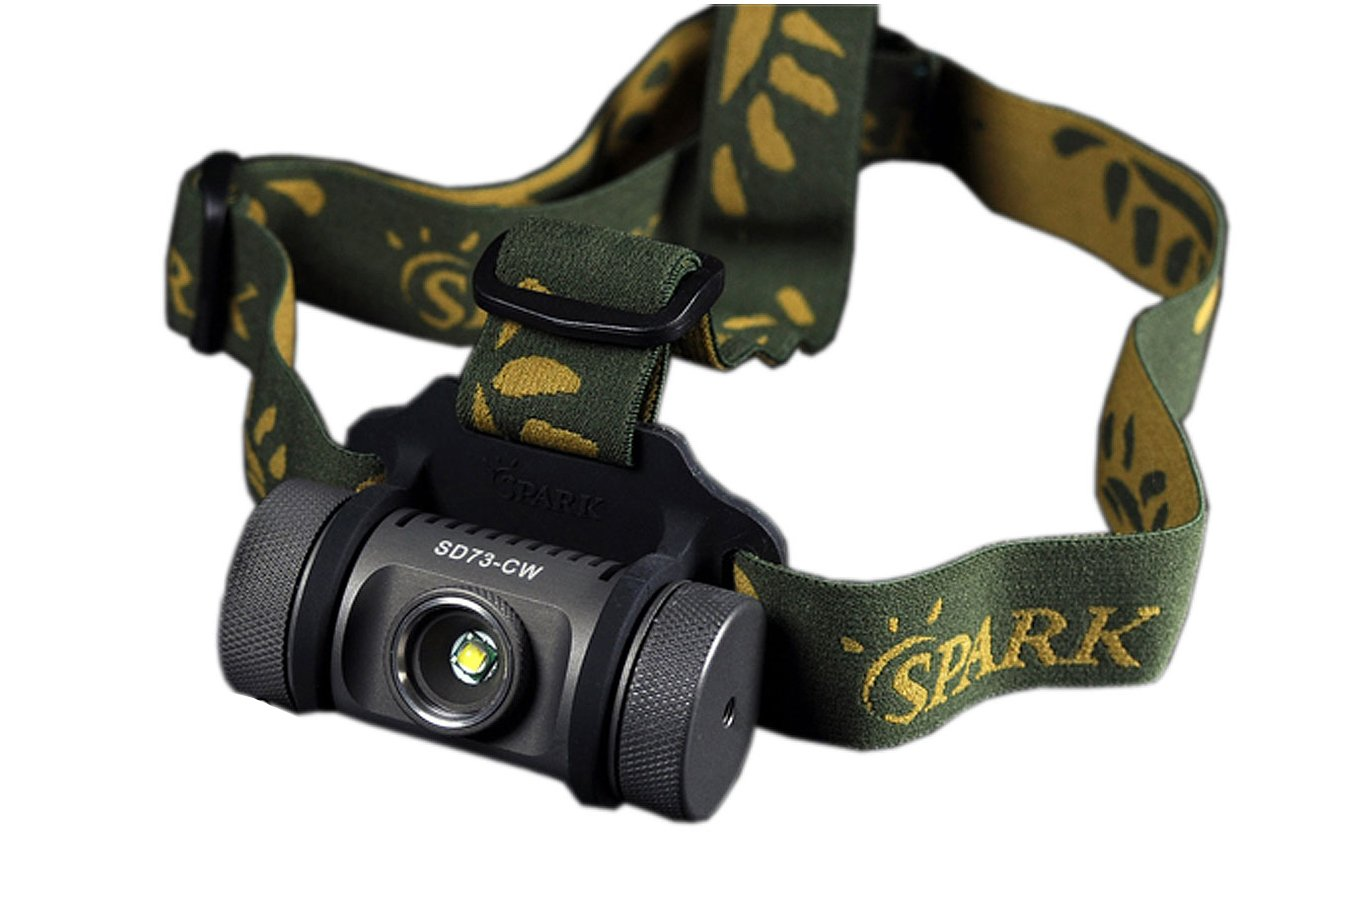 Spark Technology Lights headlamp, SD73-CW